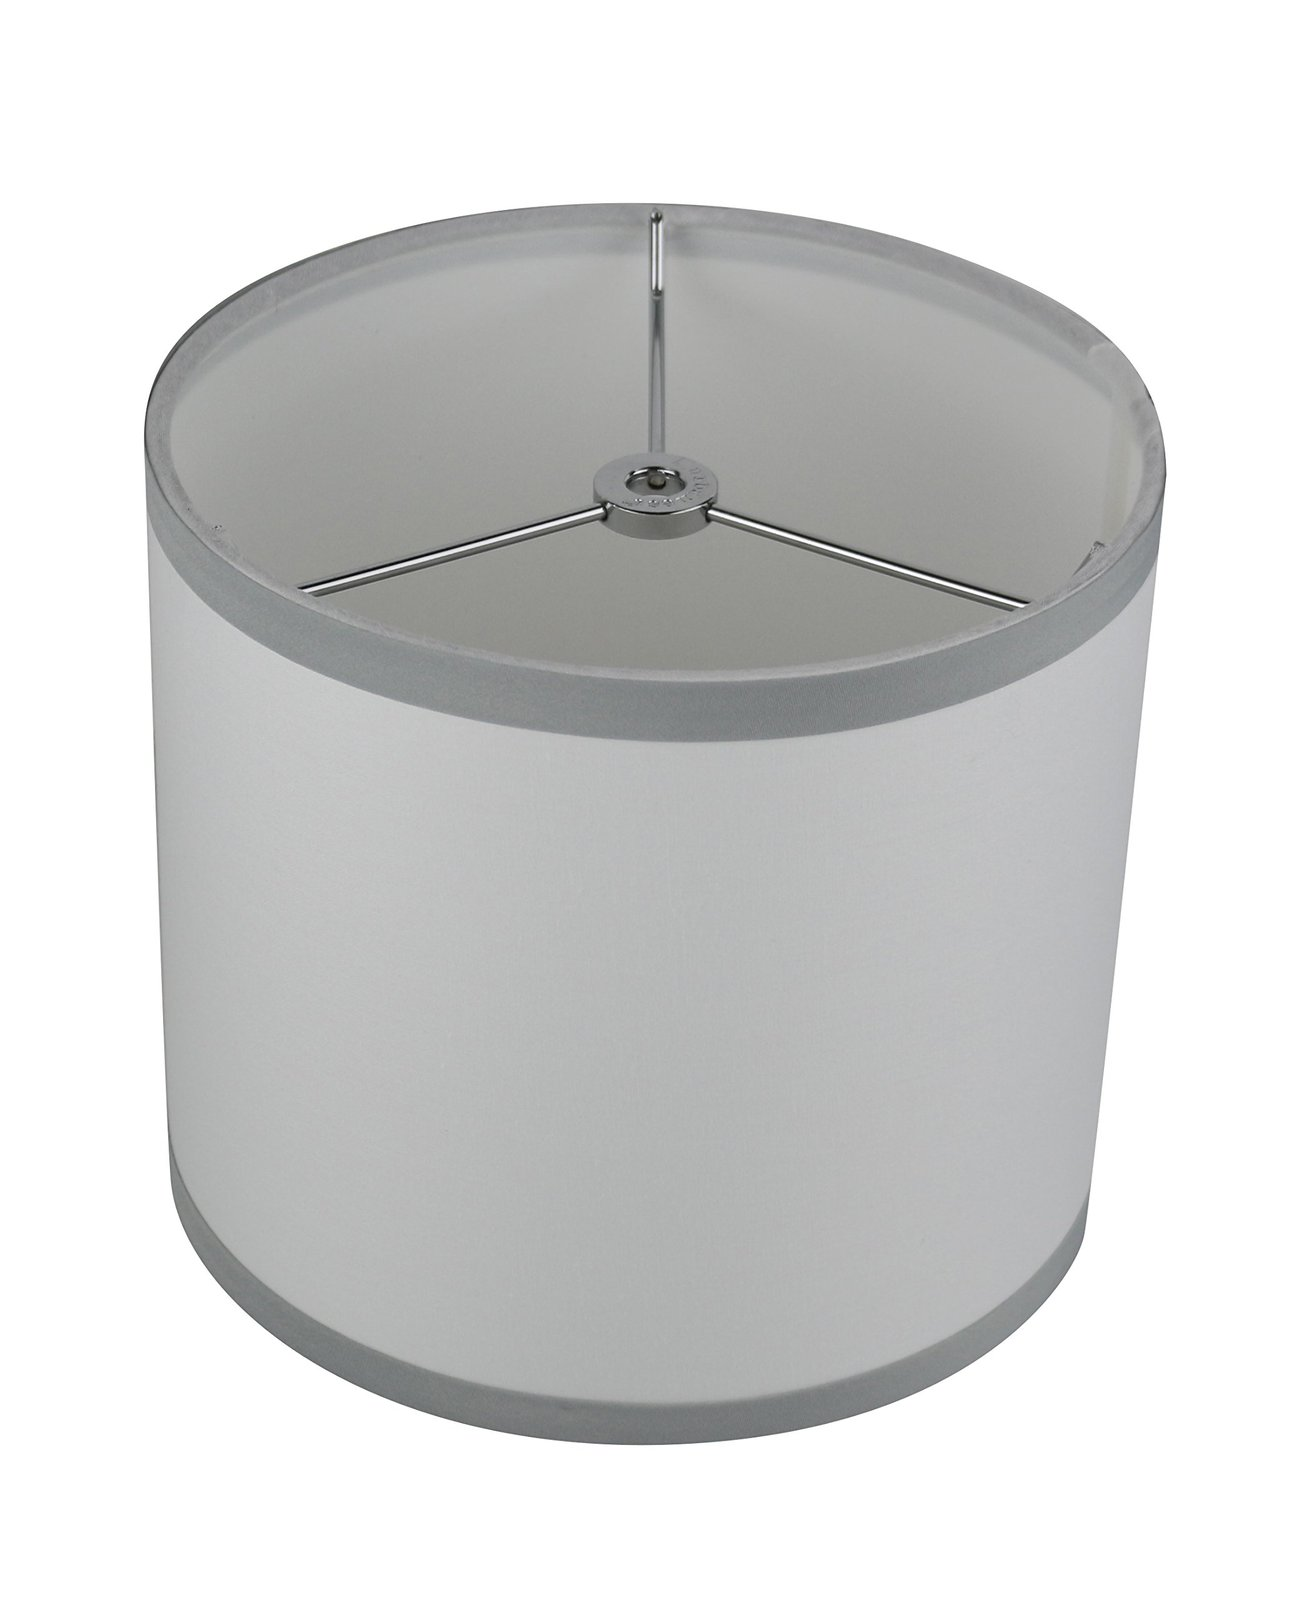 Urbanest Cotton Classic Drum Lampshade, 8-inch by 8-inch by 7-inch, Off White wi image 2